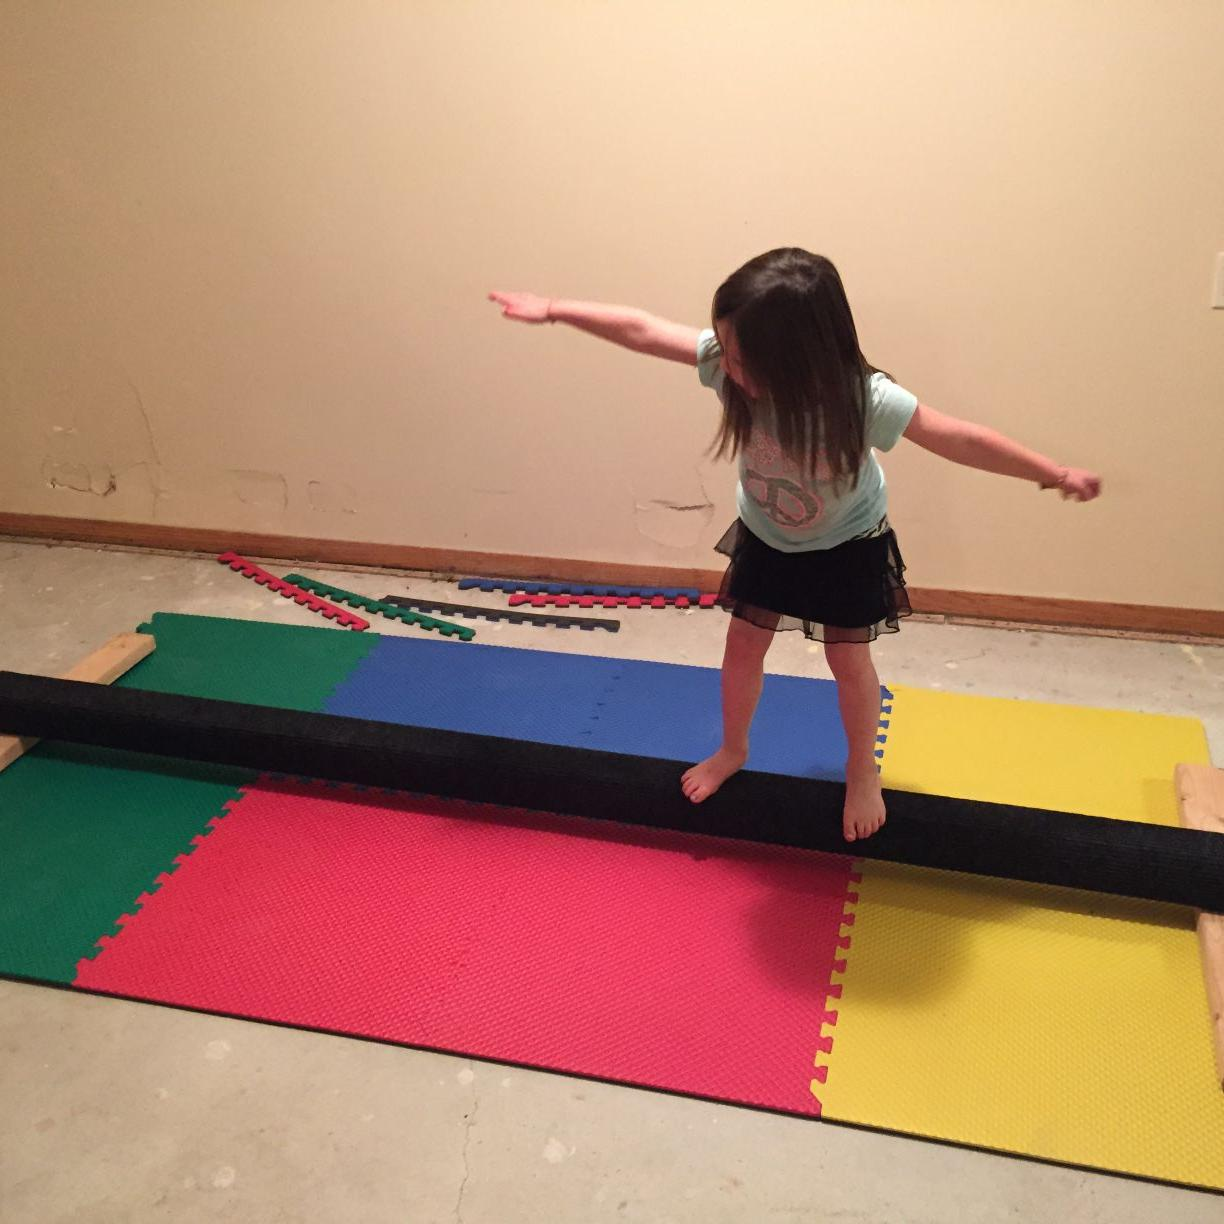 Dad tackles home gymnastics project